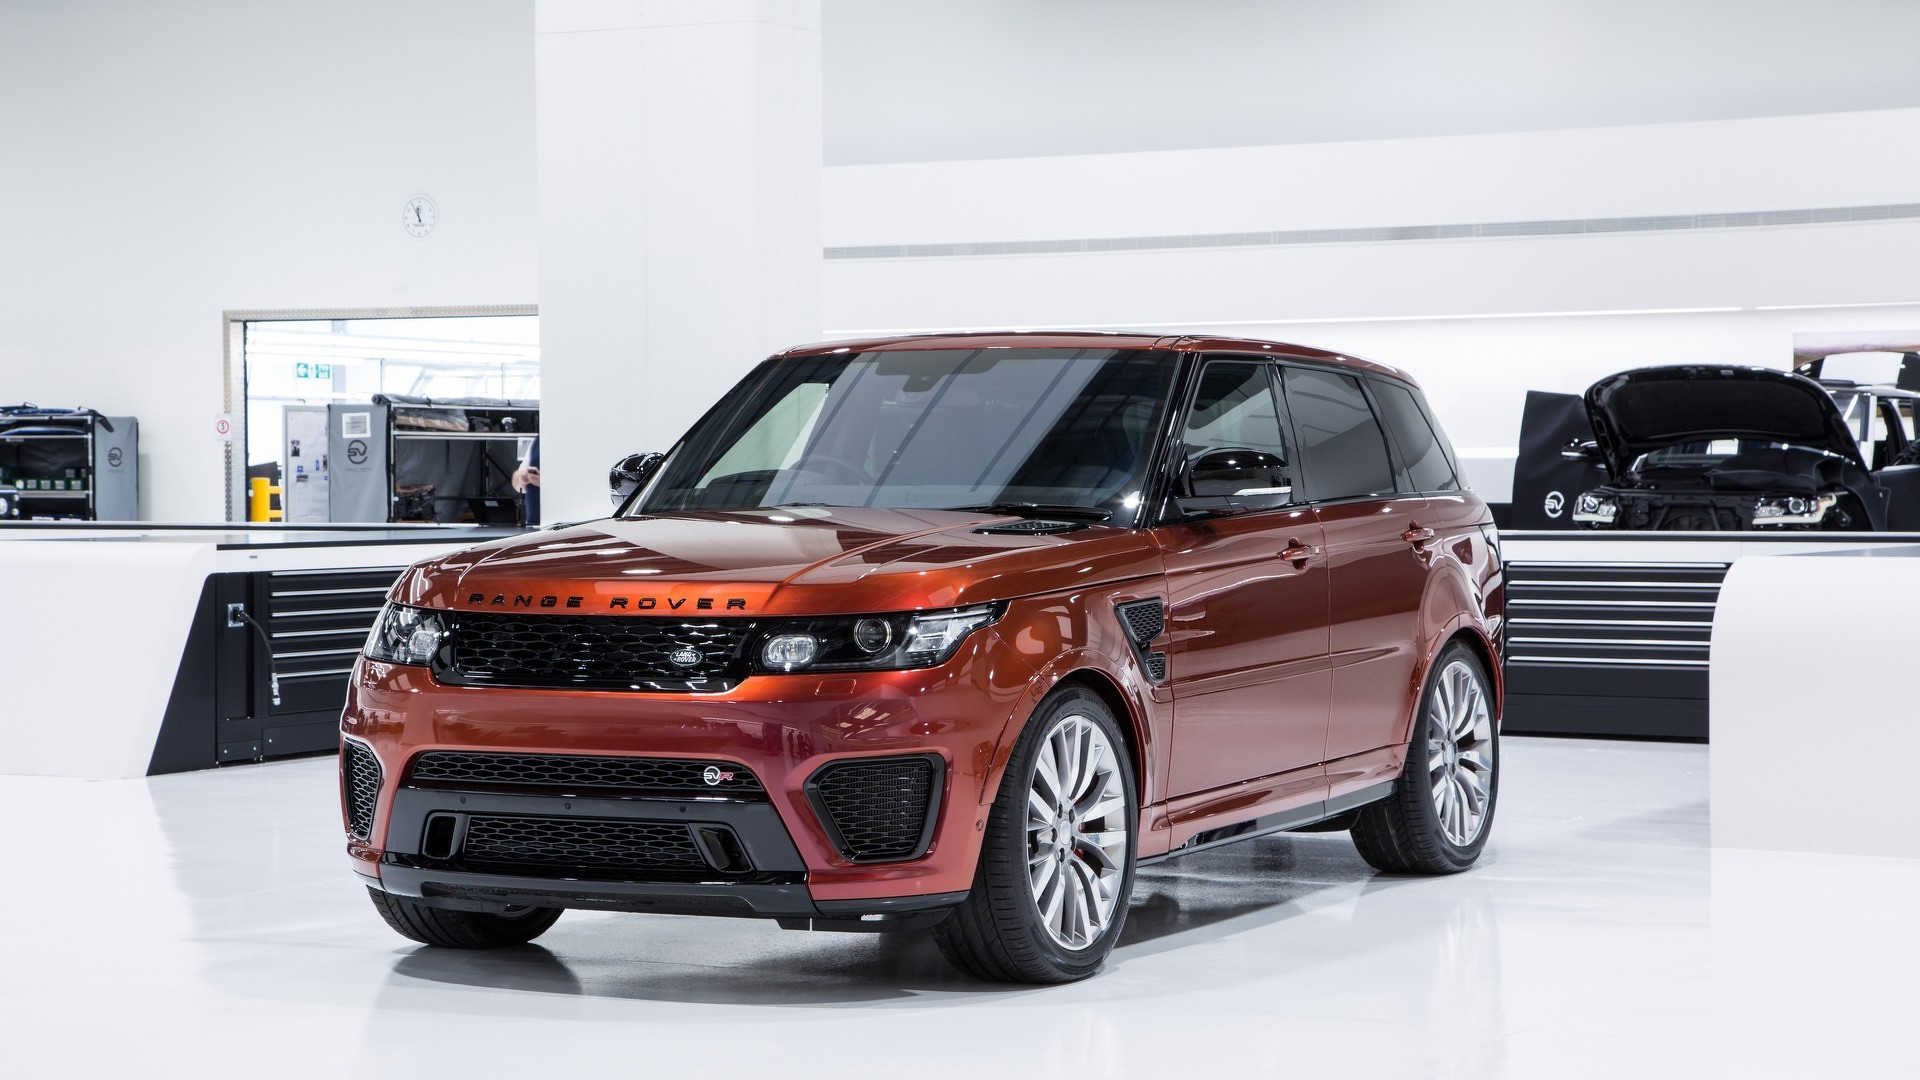 jaguar land rover Rockar has taken the hassle out of buying your new range rover instant valuation of your car, clear prices & tailored land rover search results based on your finance preferences.